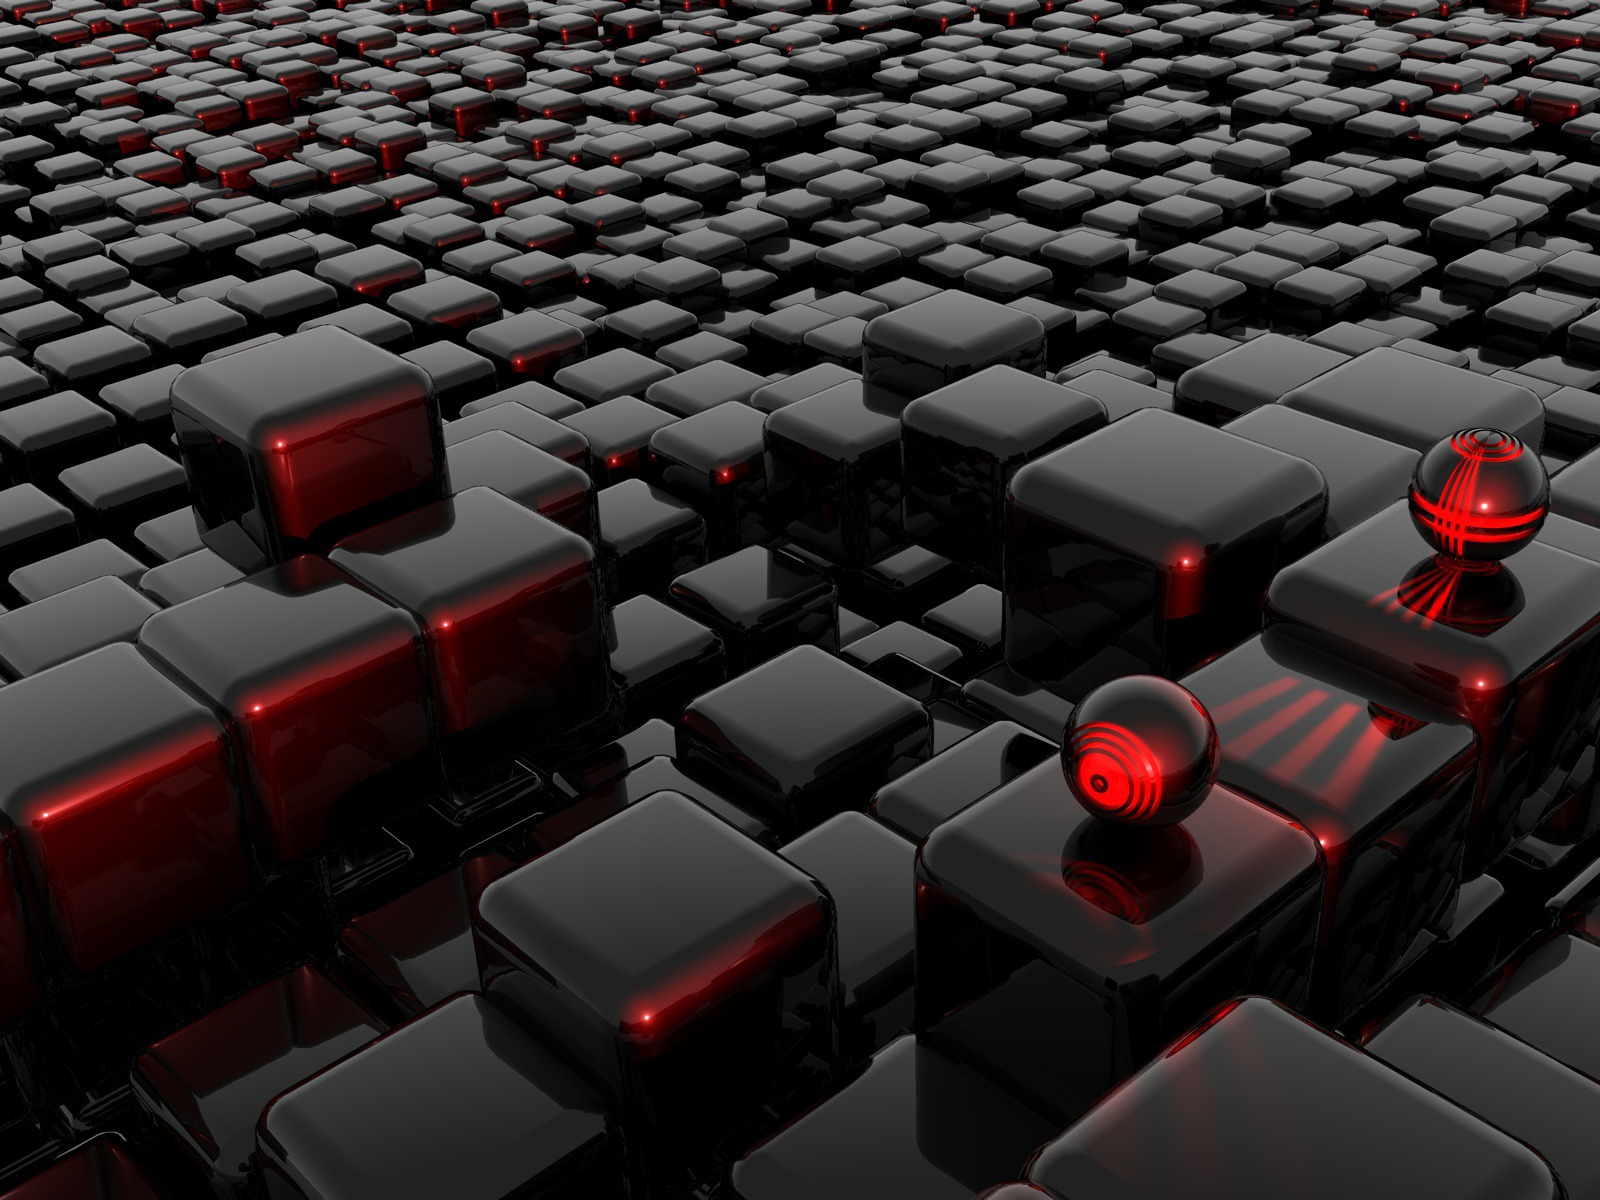 Black Box And Square Wallpapers HD Wallpaper 3D Abstract 1600x1200